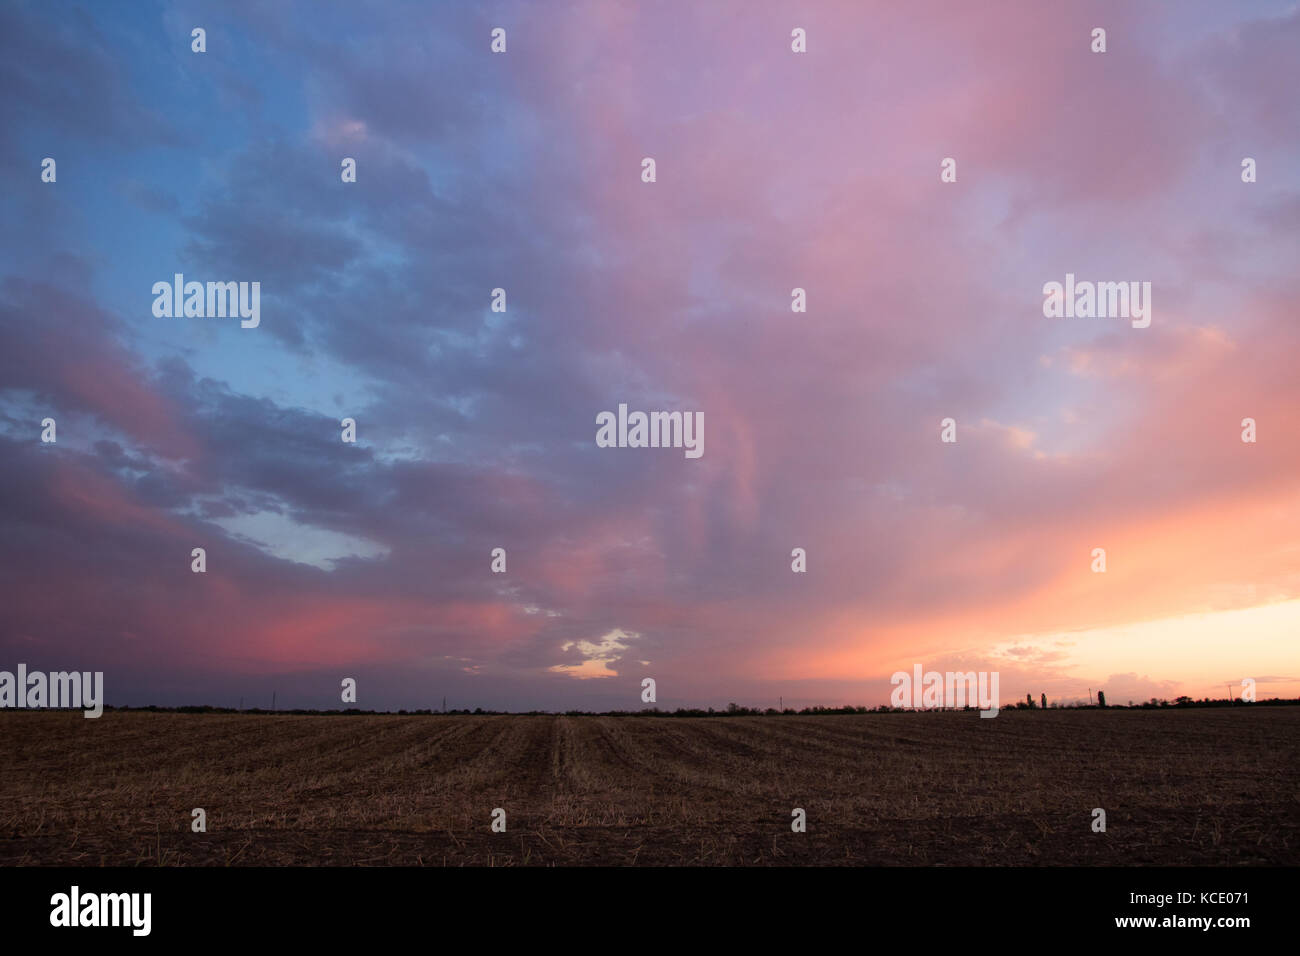 Colourful sunset over the fields - Stock Image